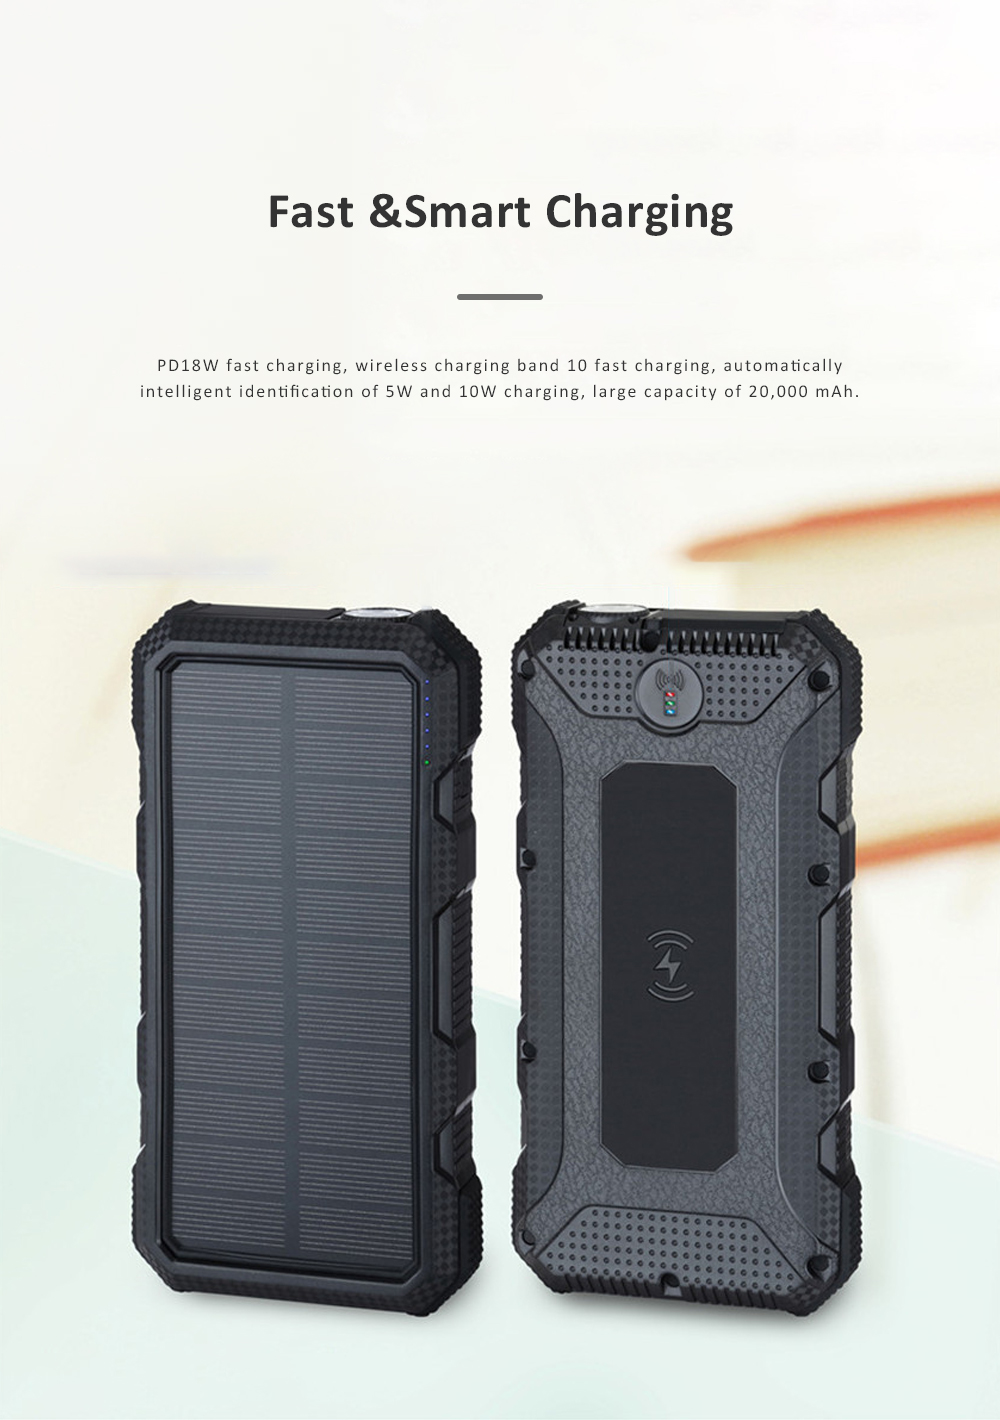 24000mAh Portable Solar Charger Two-way Type-C Power Bank with Flashlight and Metal Hook for Mobile Phone iPad MP3 MP4 1